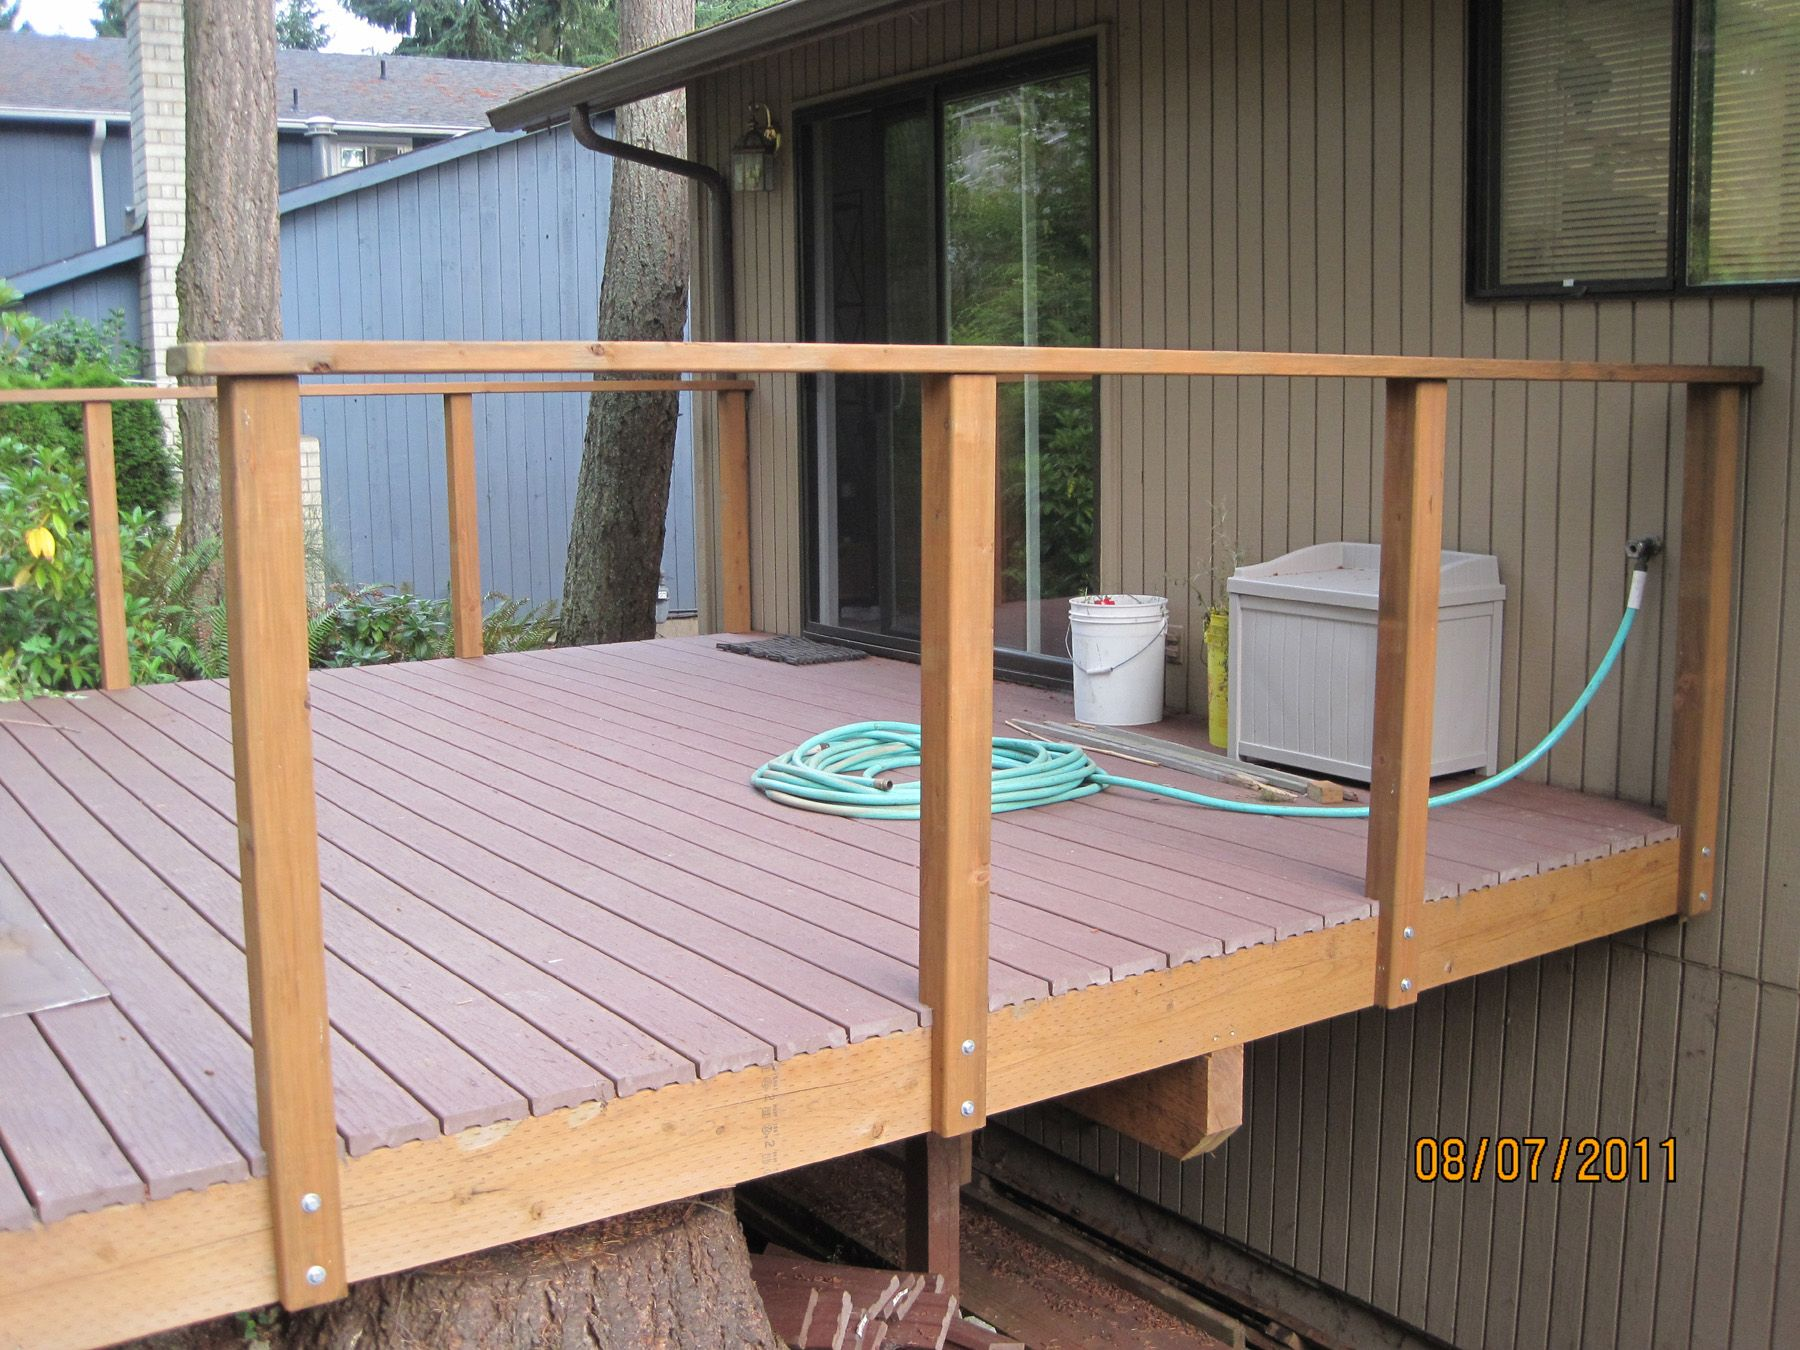 Best The Deck Railings Are Up Deck Railings Railings And 400 x 300